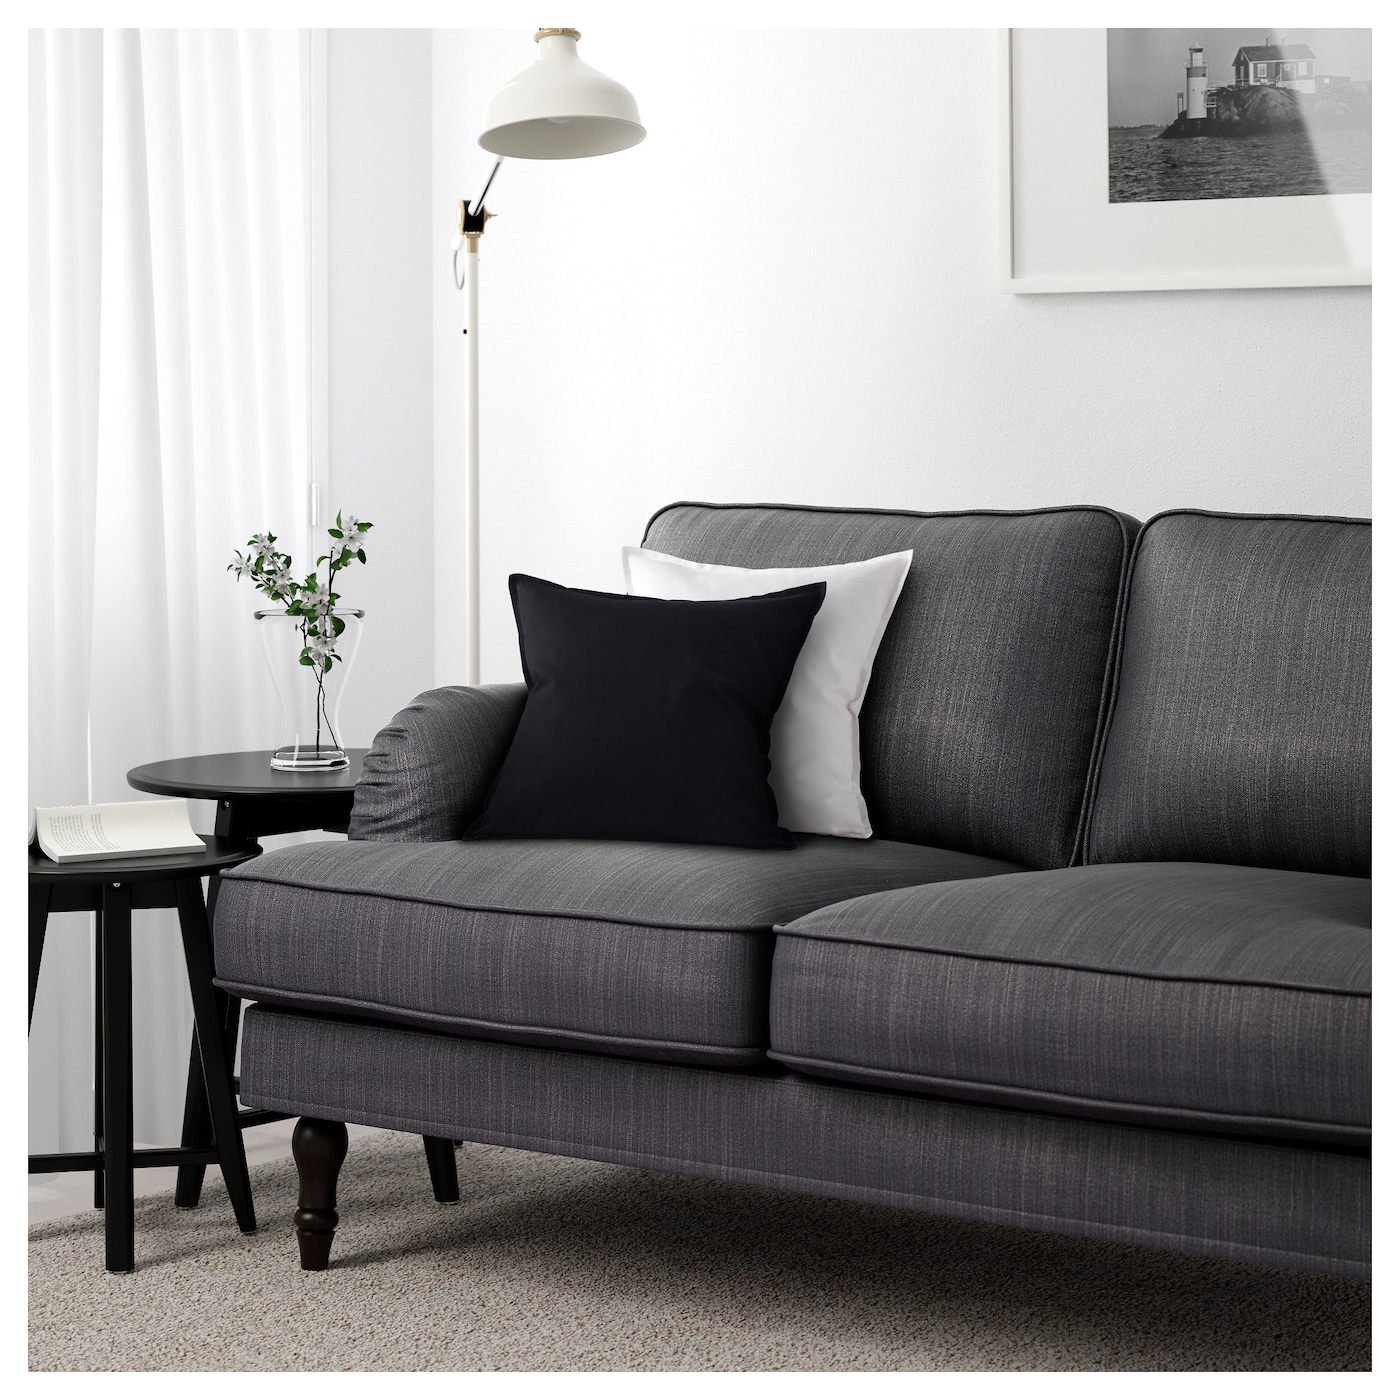 STOCKSUND Two seat sofa Nolhaga dark grey black wood IKEA